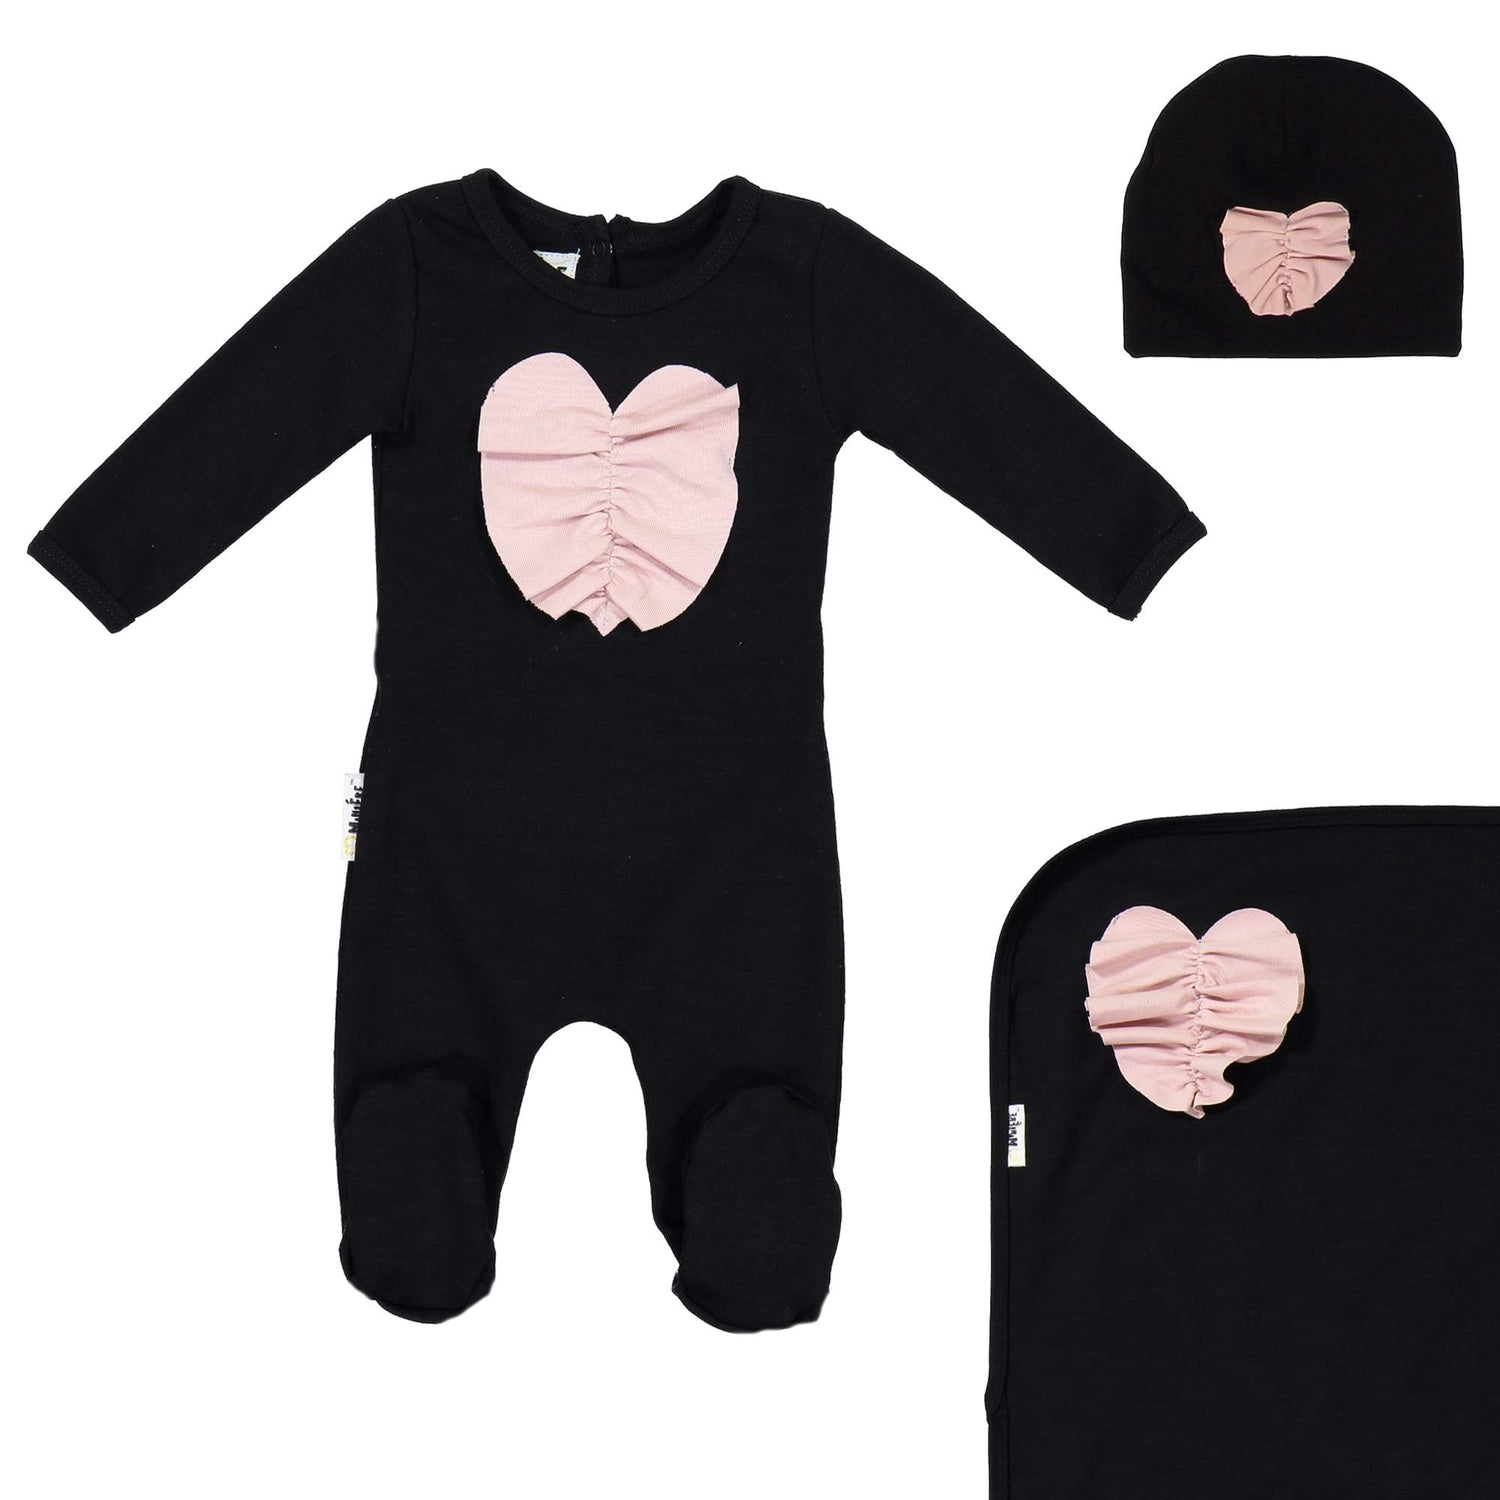 Ruched Heart Footie Set Maniere Accessories Black 3 Month